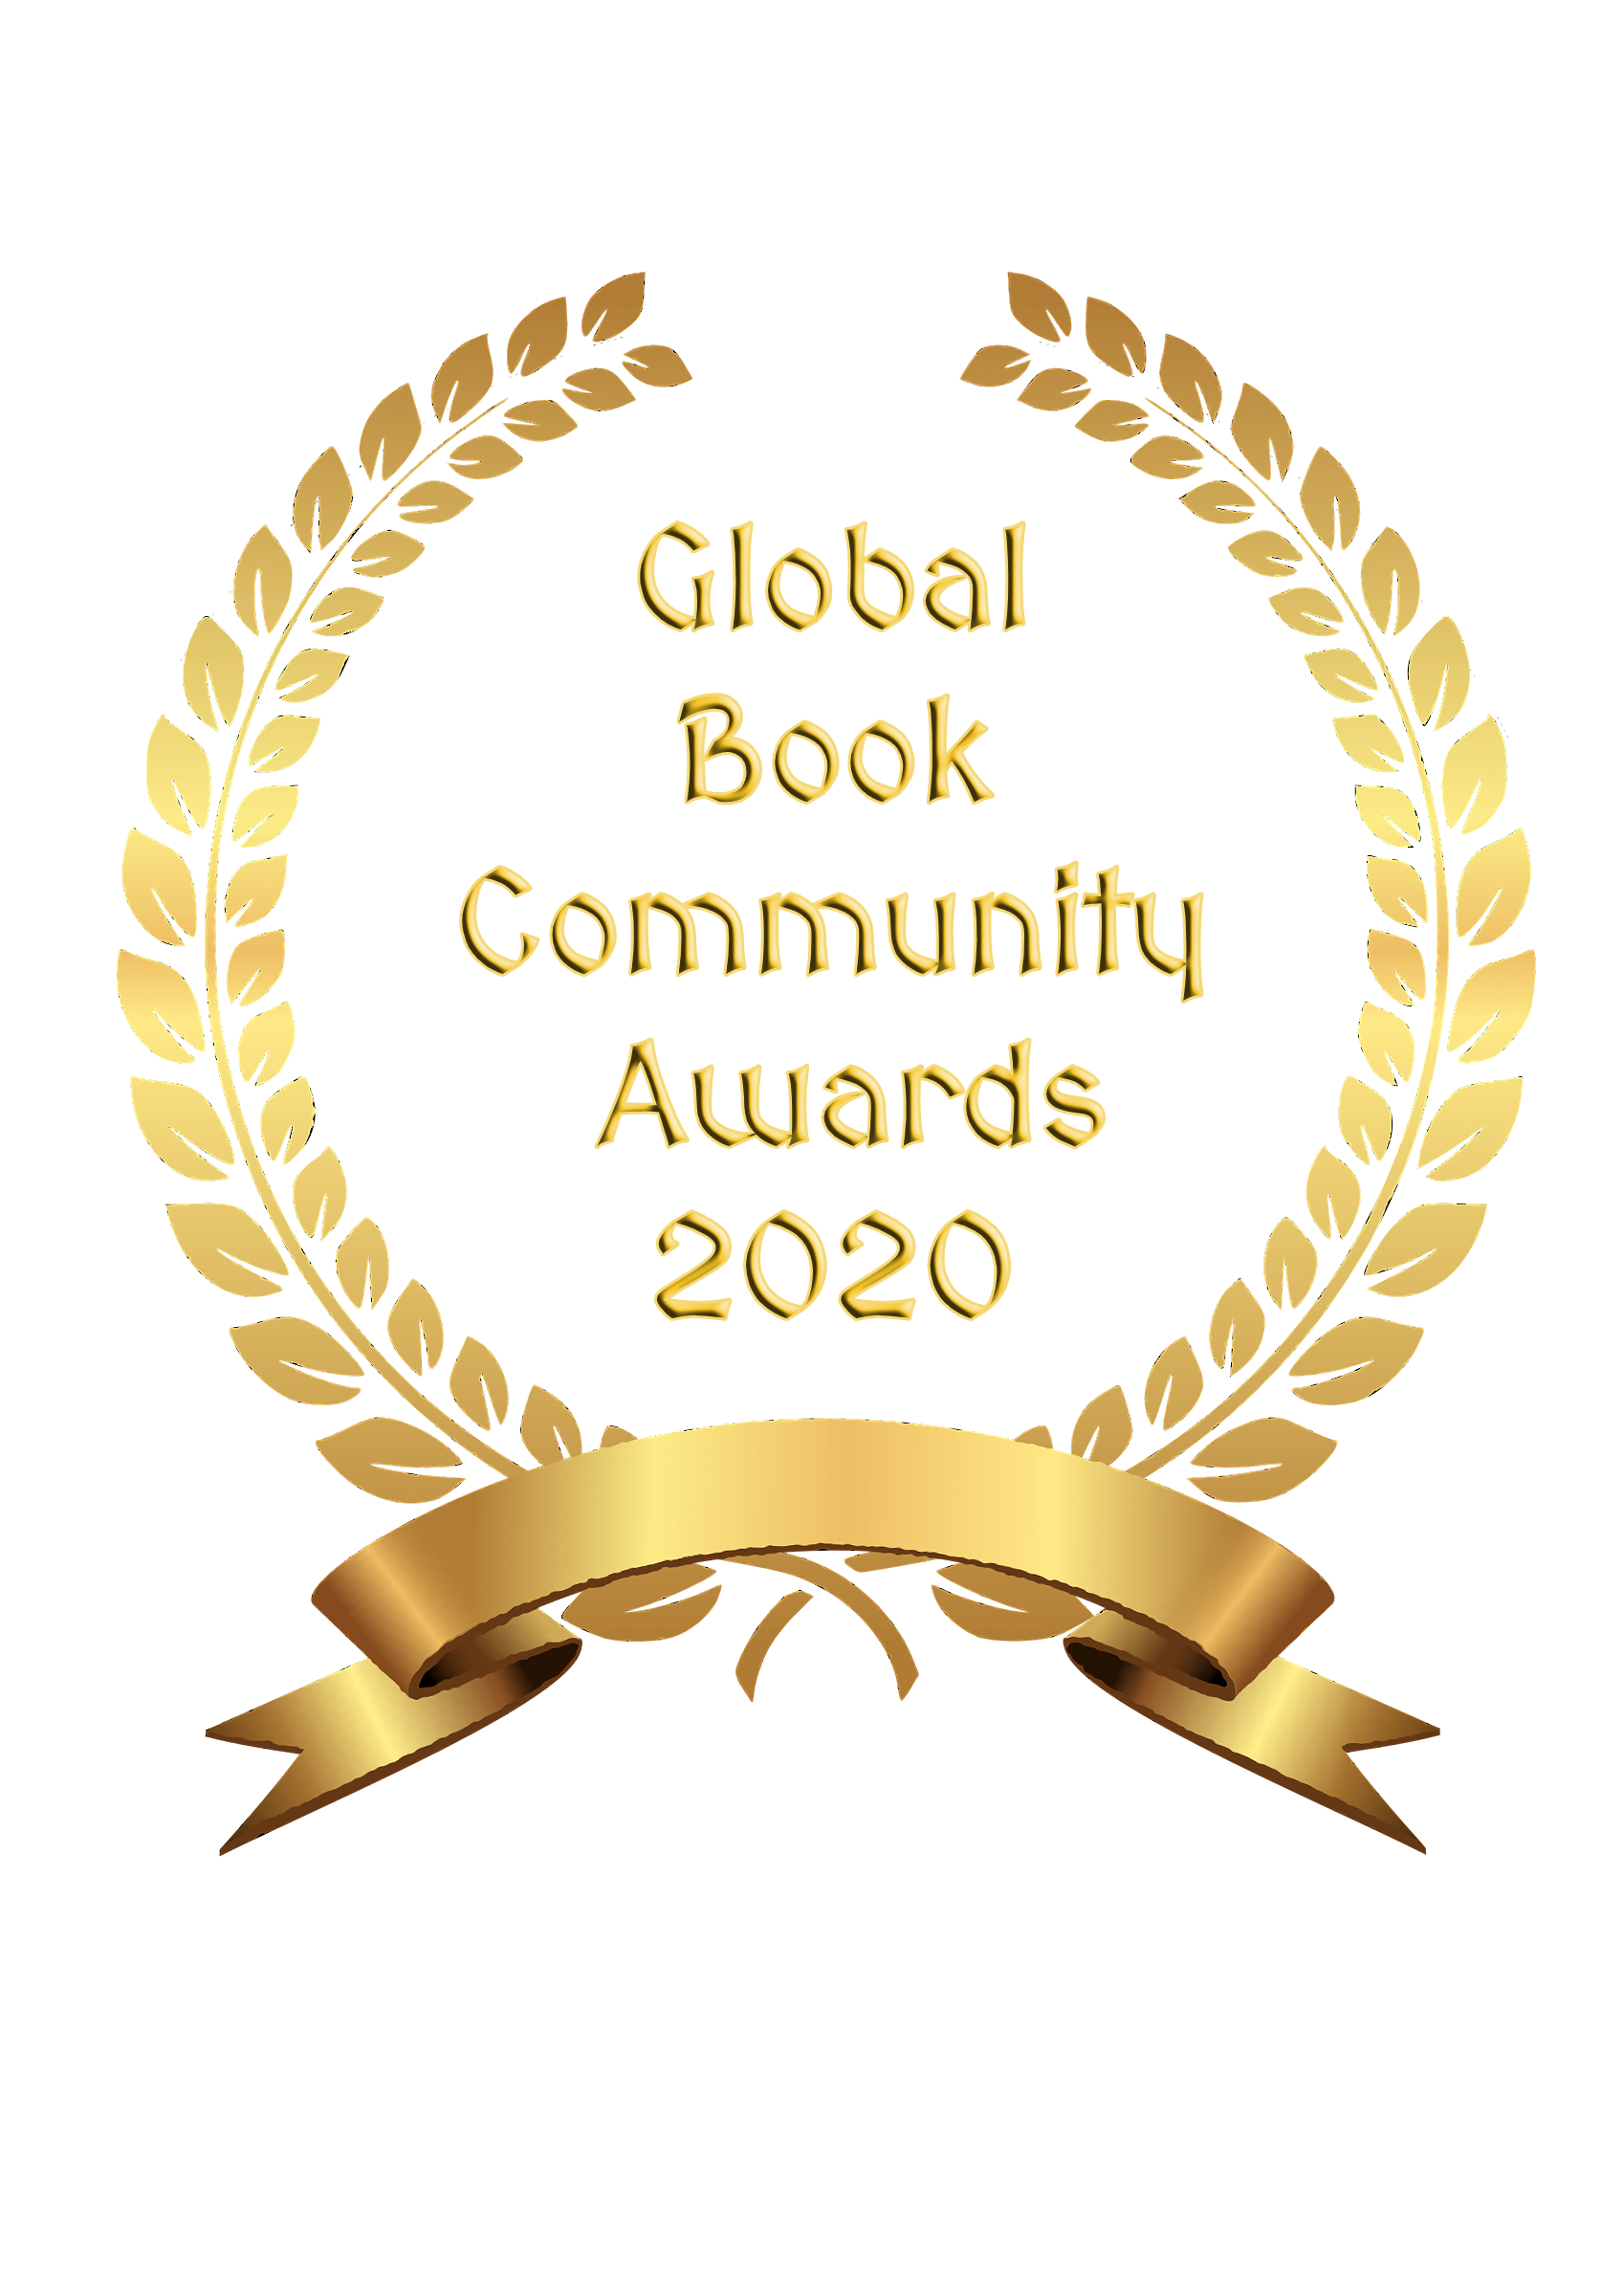 Vote for me for The Global Book Community Awards 2020